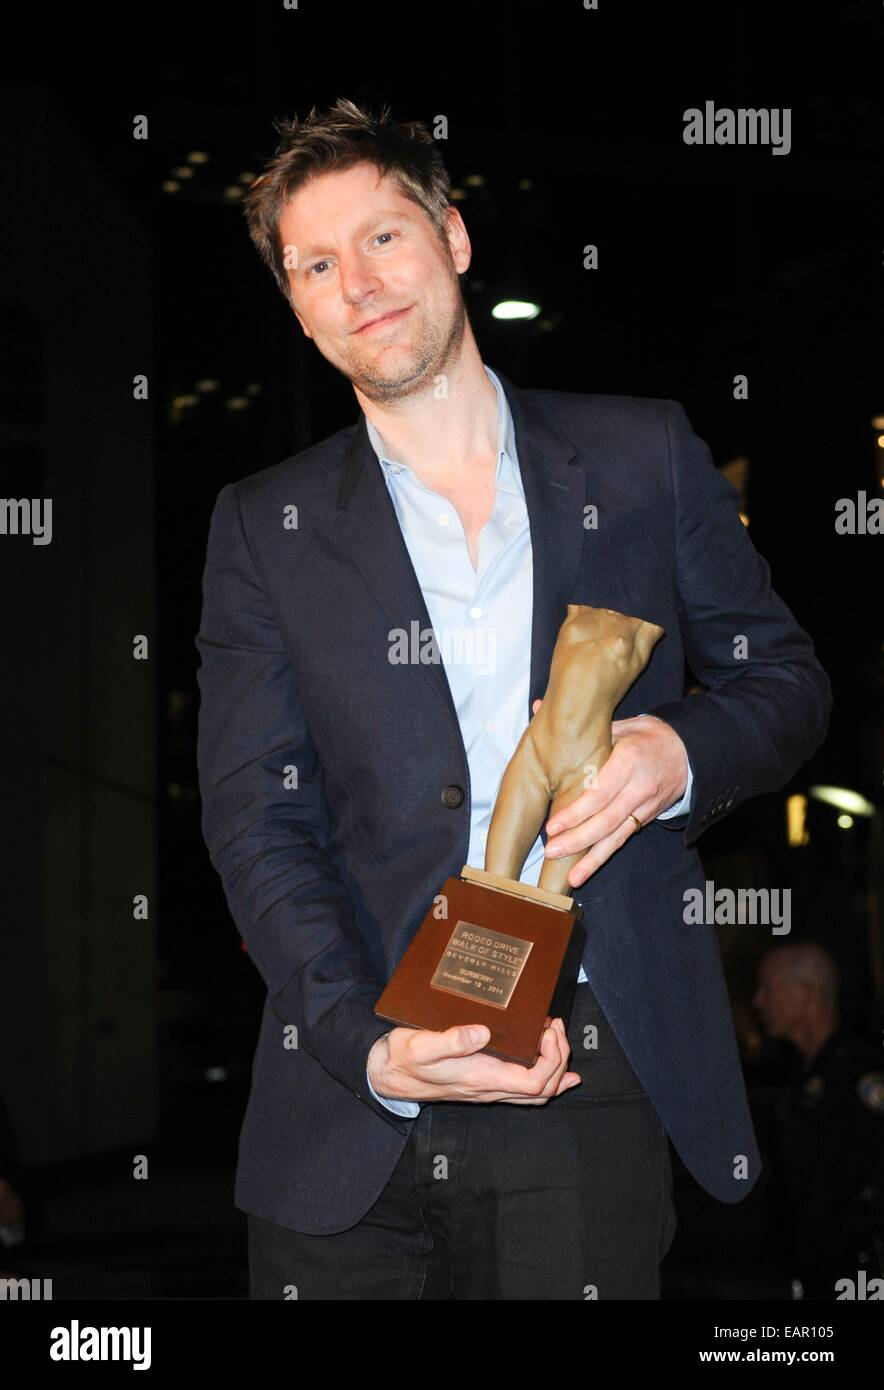 Beverly Hills, CA. 19th Nov, 2014. Christopher Bailey in attendance for Rodeo Drive Walk of Style Award Presentation, Stock Photo